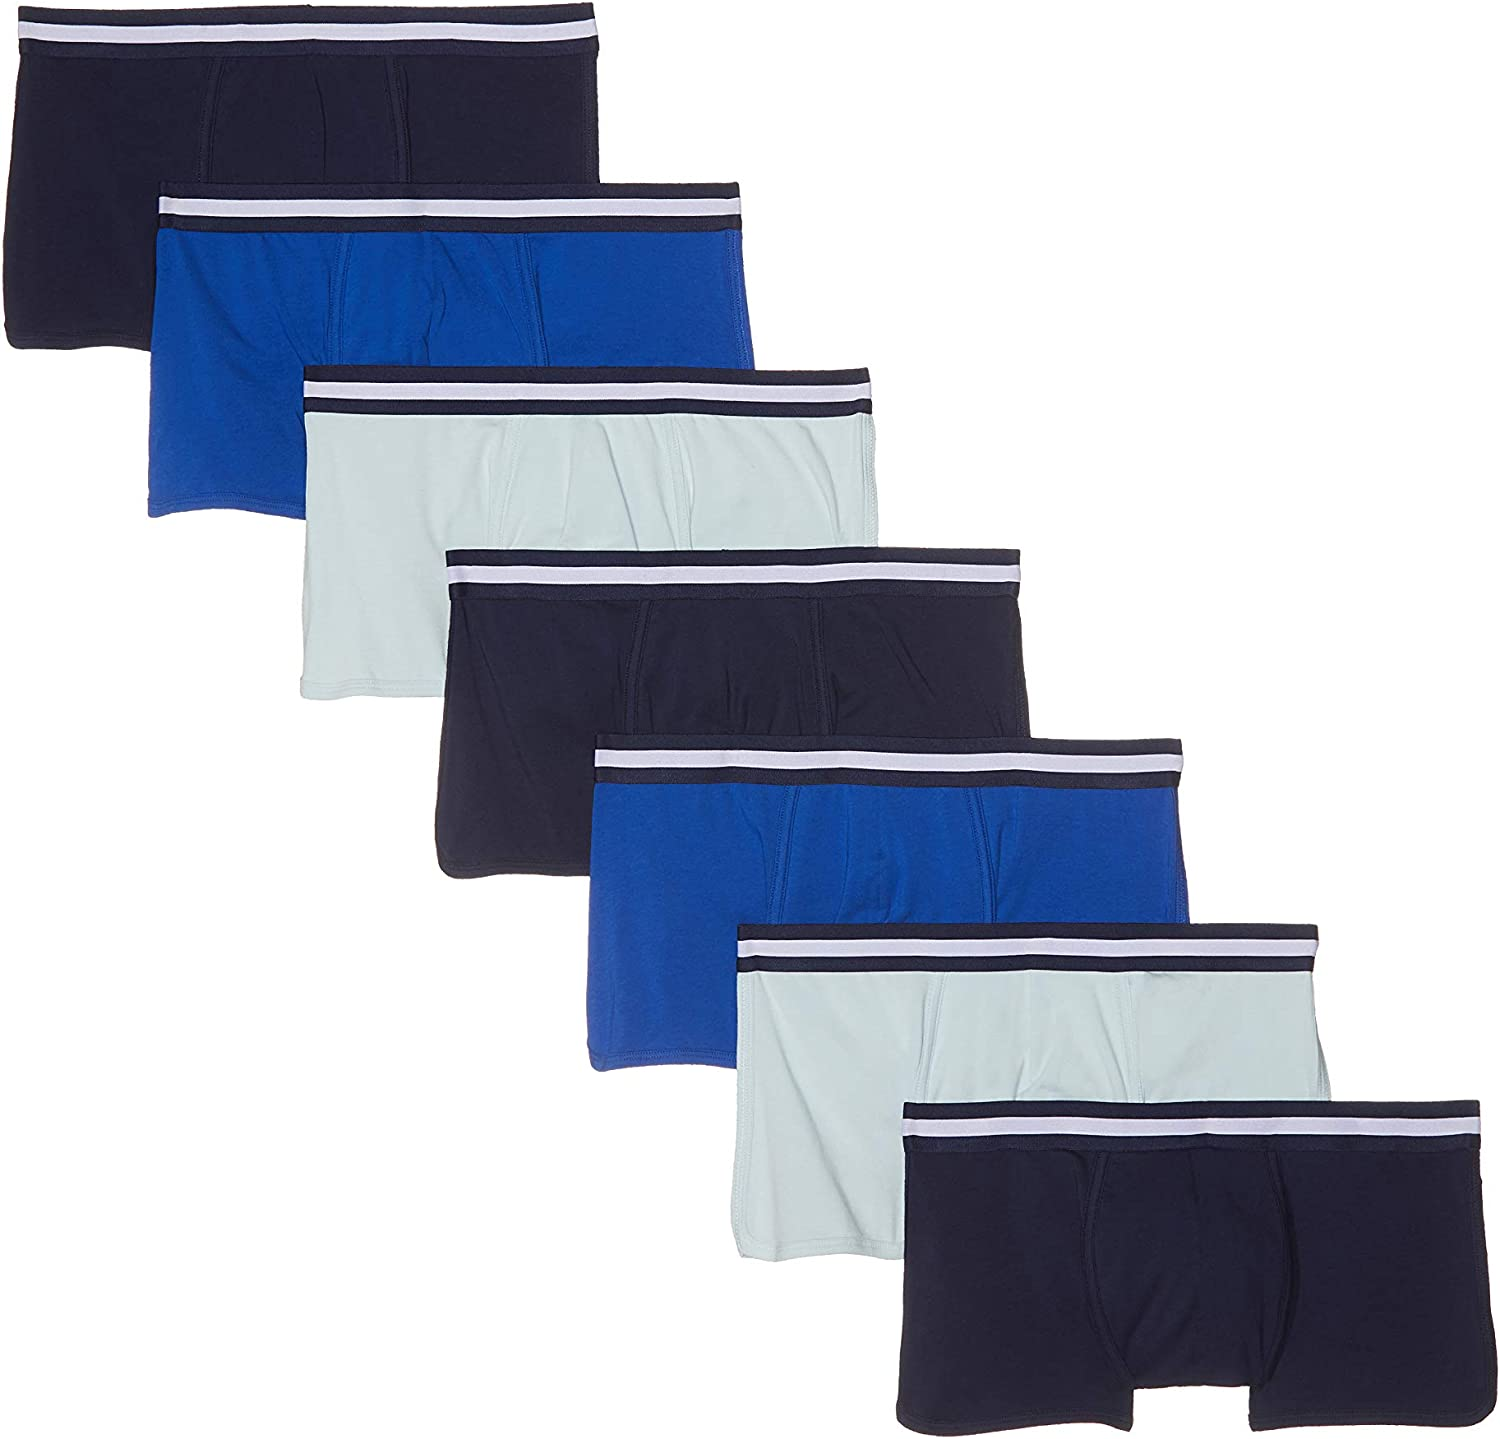 Amazon Brand - find. Men's Stretch Cotton Boxer Briefs Trunks, Pack of 7